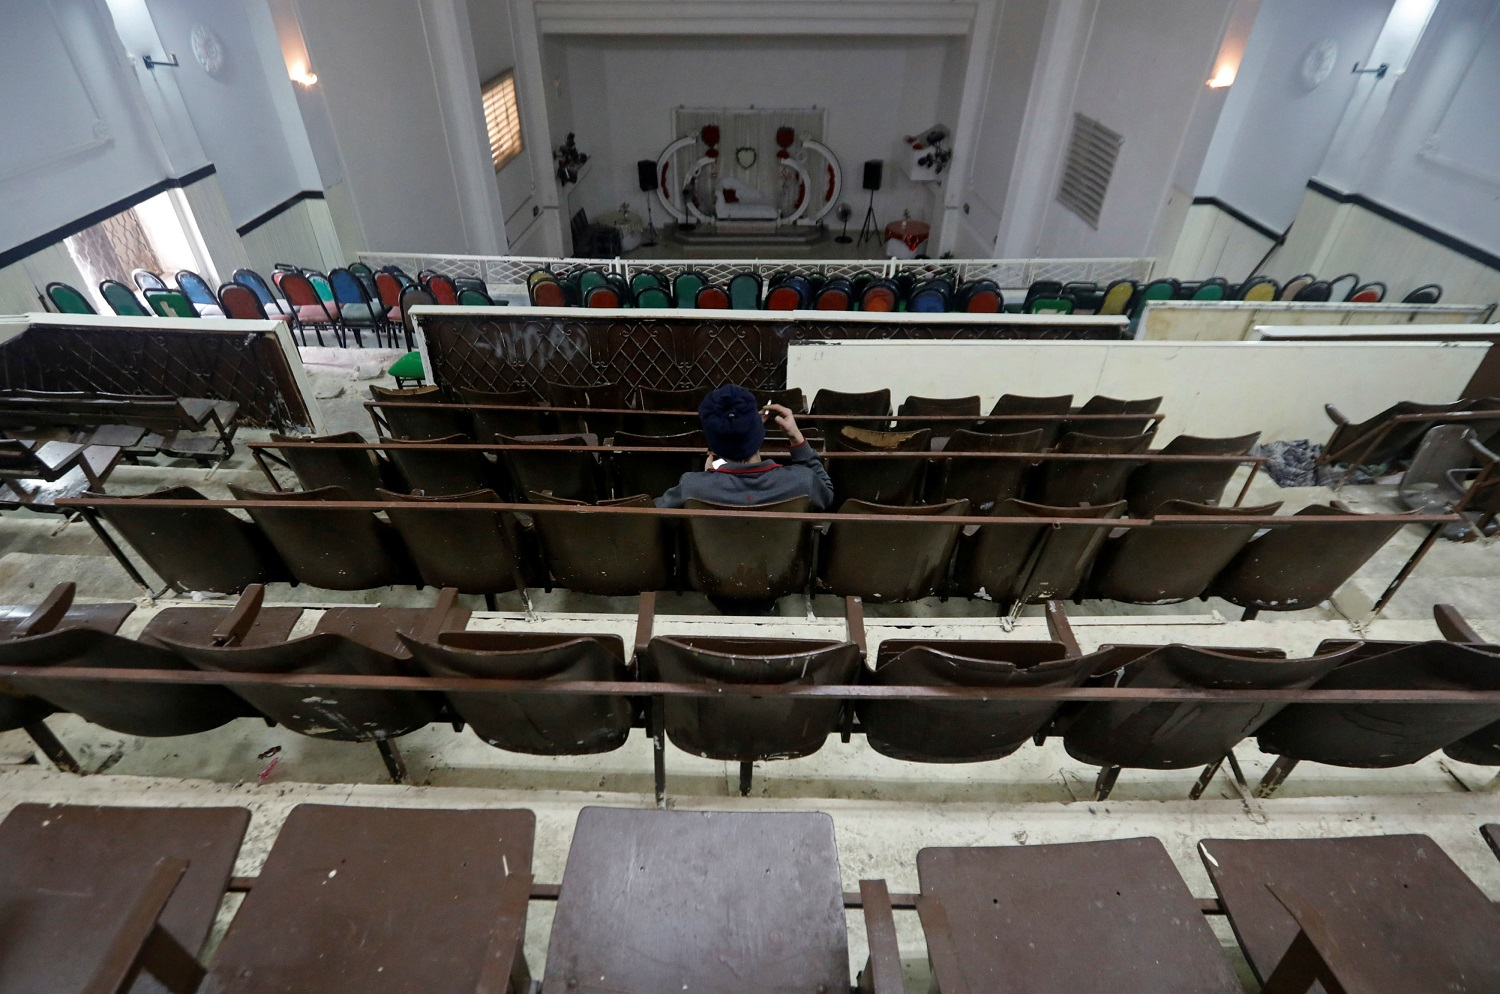 The cinema, one of the first in the West Bank, was originally opened by Abdel-Rahim Hanoun's father in 1965. Two years later Israel took control of the area during the 1967 Arab-Israeli war. (Reuters)